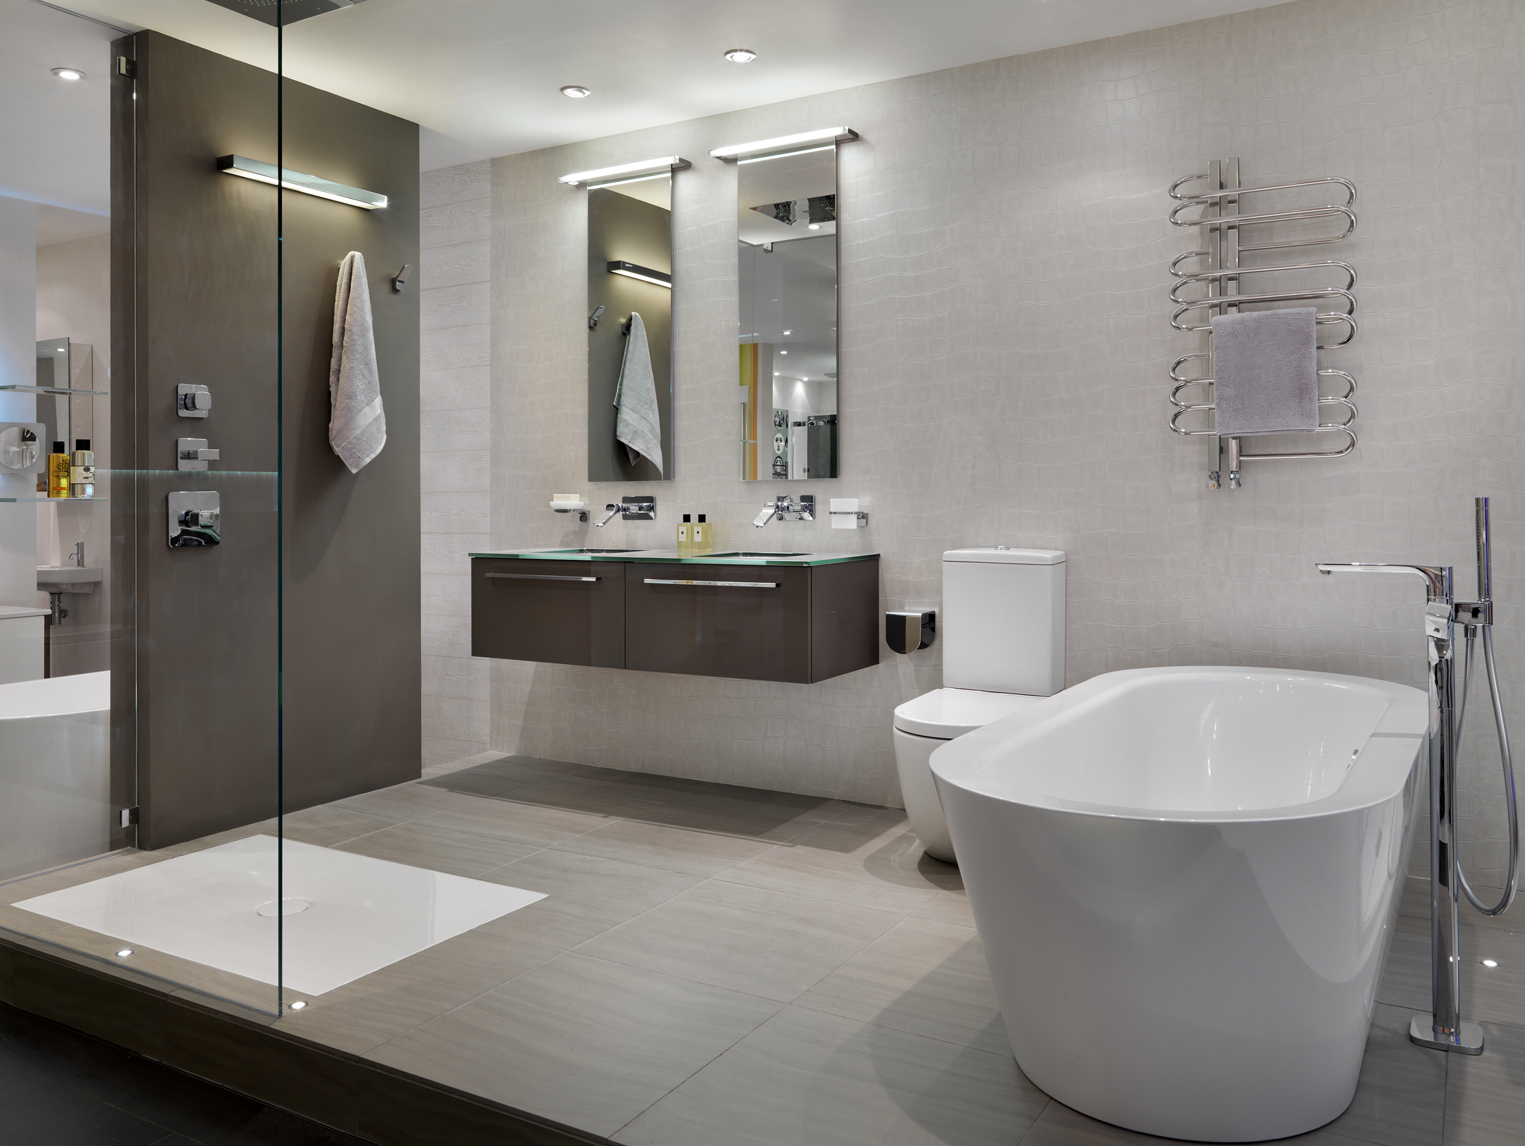 alternative bathroom showrooms bathroom showrooms ideas egovjournal com  home design magazine and HARMKQA